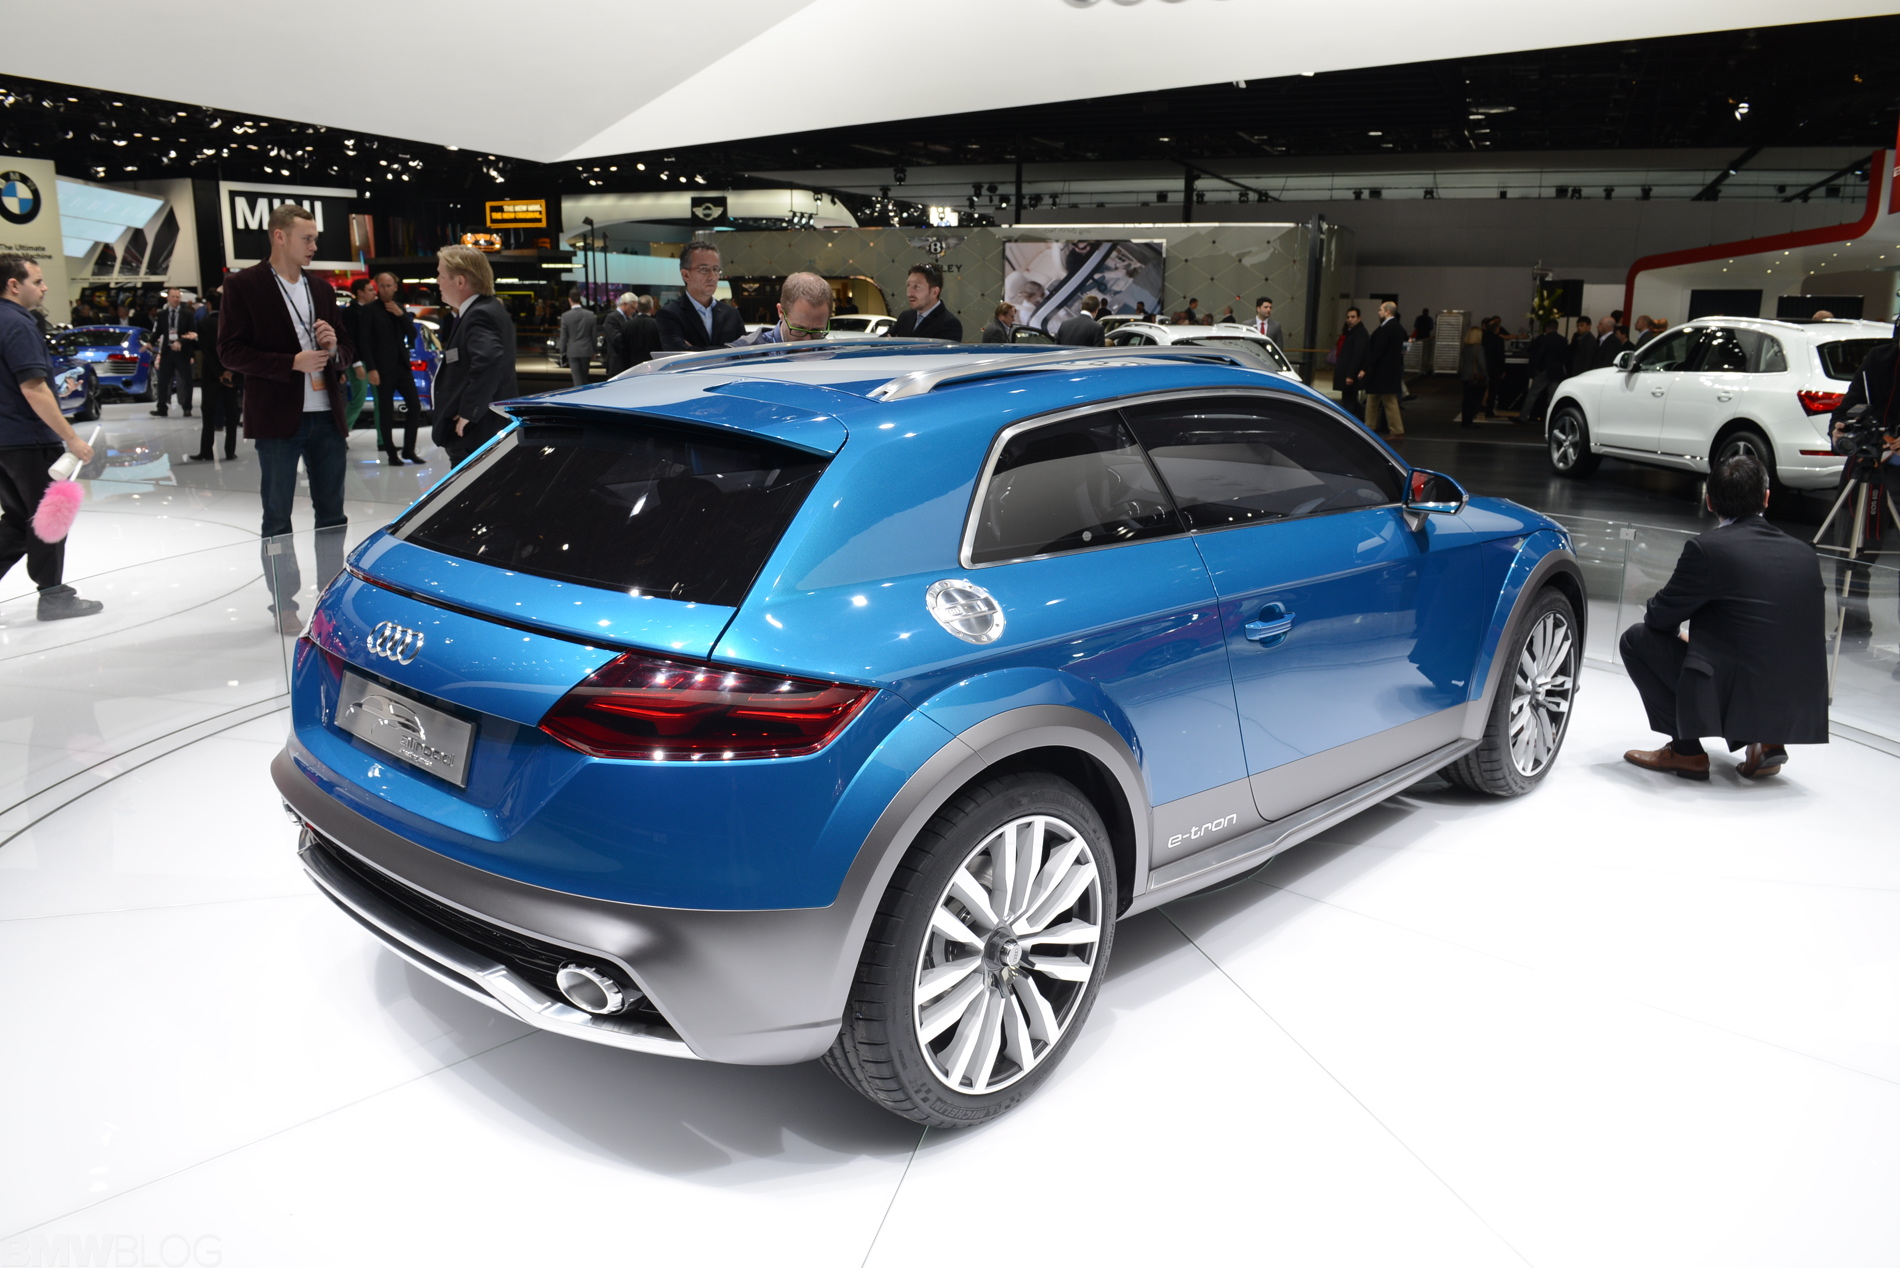 Audi Q1 Allroad Shooting Brake Debut At 2014 Detroit Auto Show